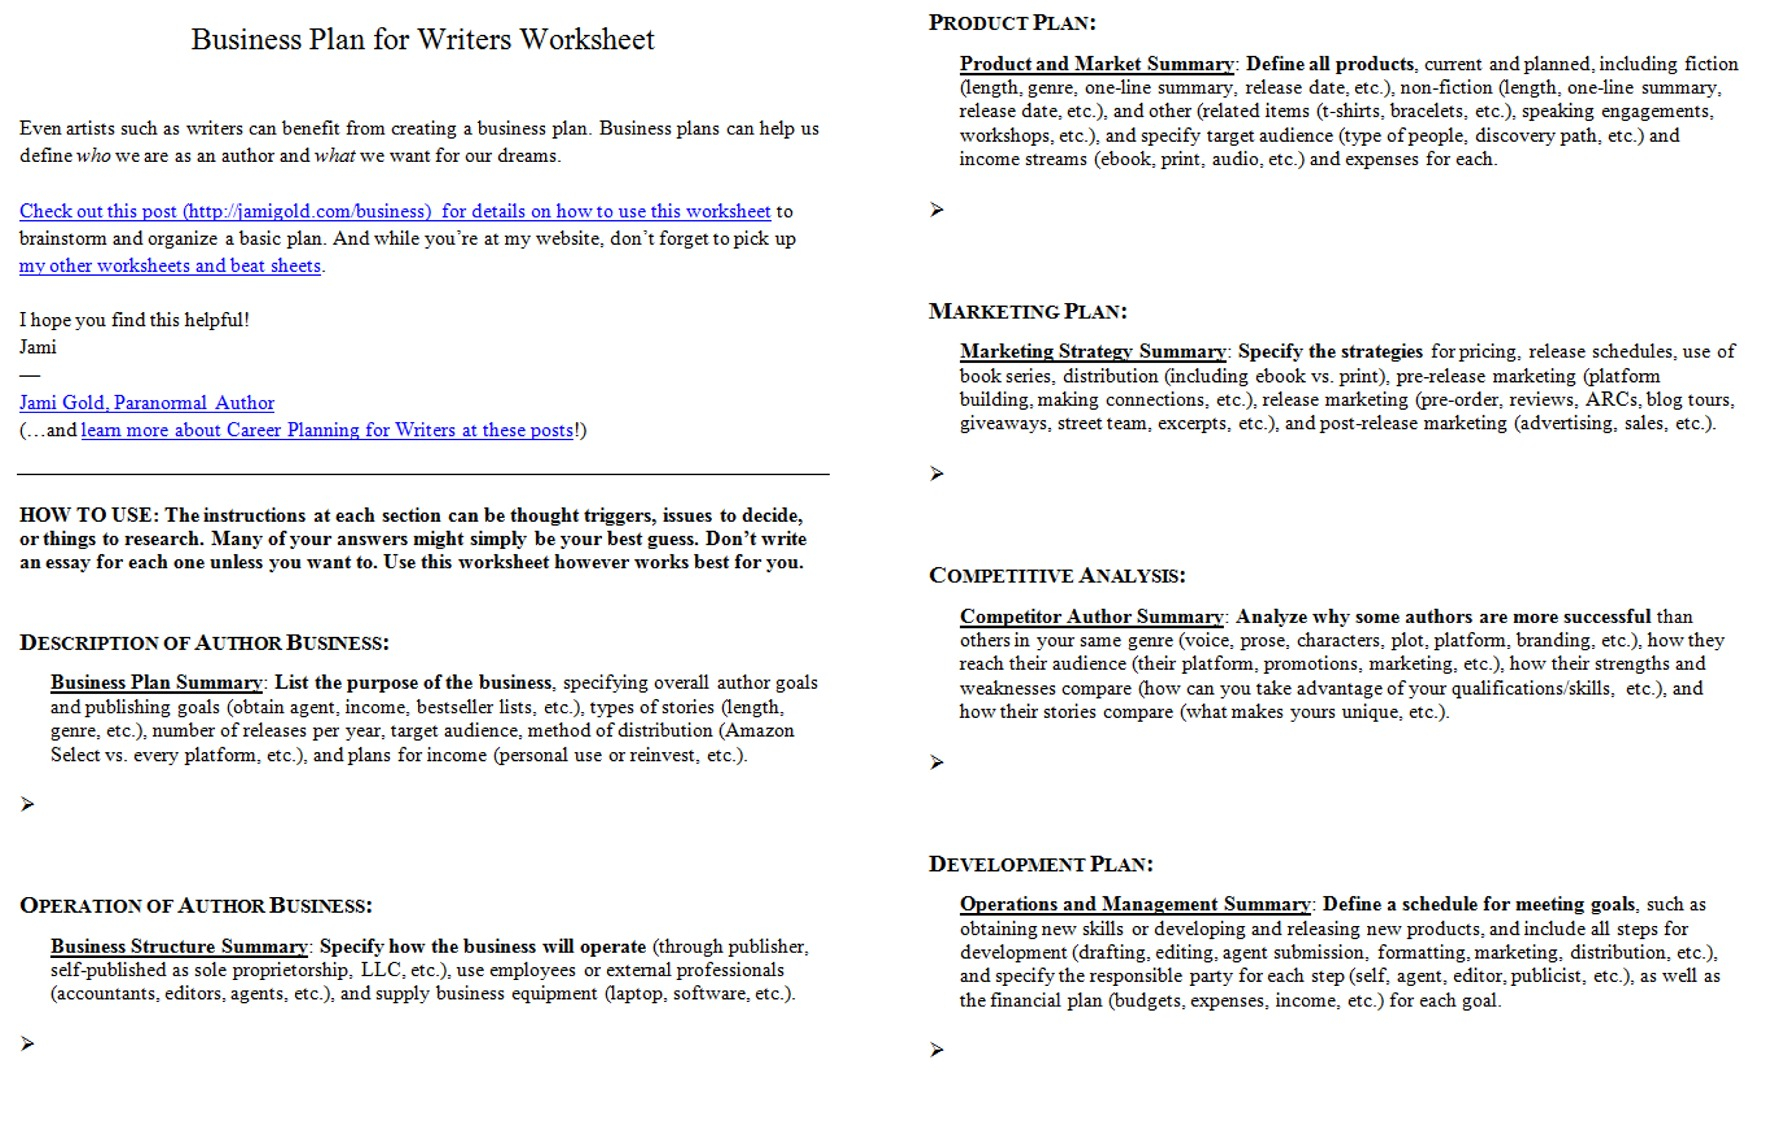 Proatmealus  Nice Worksheets For Writers  Jami Gold Paranormal Author With Likable Screen Shot Of Both Pages Of The Business Plan For Writers Worksheet With Charming Cubic Graphs Worksheet Also Countable Nouns Worksheet In Addition Sequencing Activity Worksheets And Grade  Worksheets English As Well As Different Types Of Angles Worksheet Additionally Who What Where When Why Worksheets Nd Grade From Jamigoldcom With Proatmealus  Likable Worksheets For Writers  Jami Gold Paranormal Author With Charming Screen Shot Of Both Pages Of The Business Plan For Writers Worksheet And Nice Cubic Graphs Worksheet Also Countable Nouns Worksheet In Addition Sequencing Activity Worksheets From Jamigoldcom